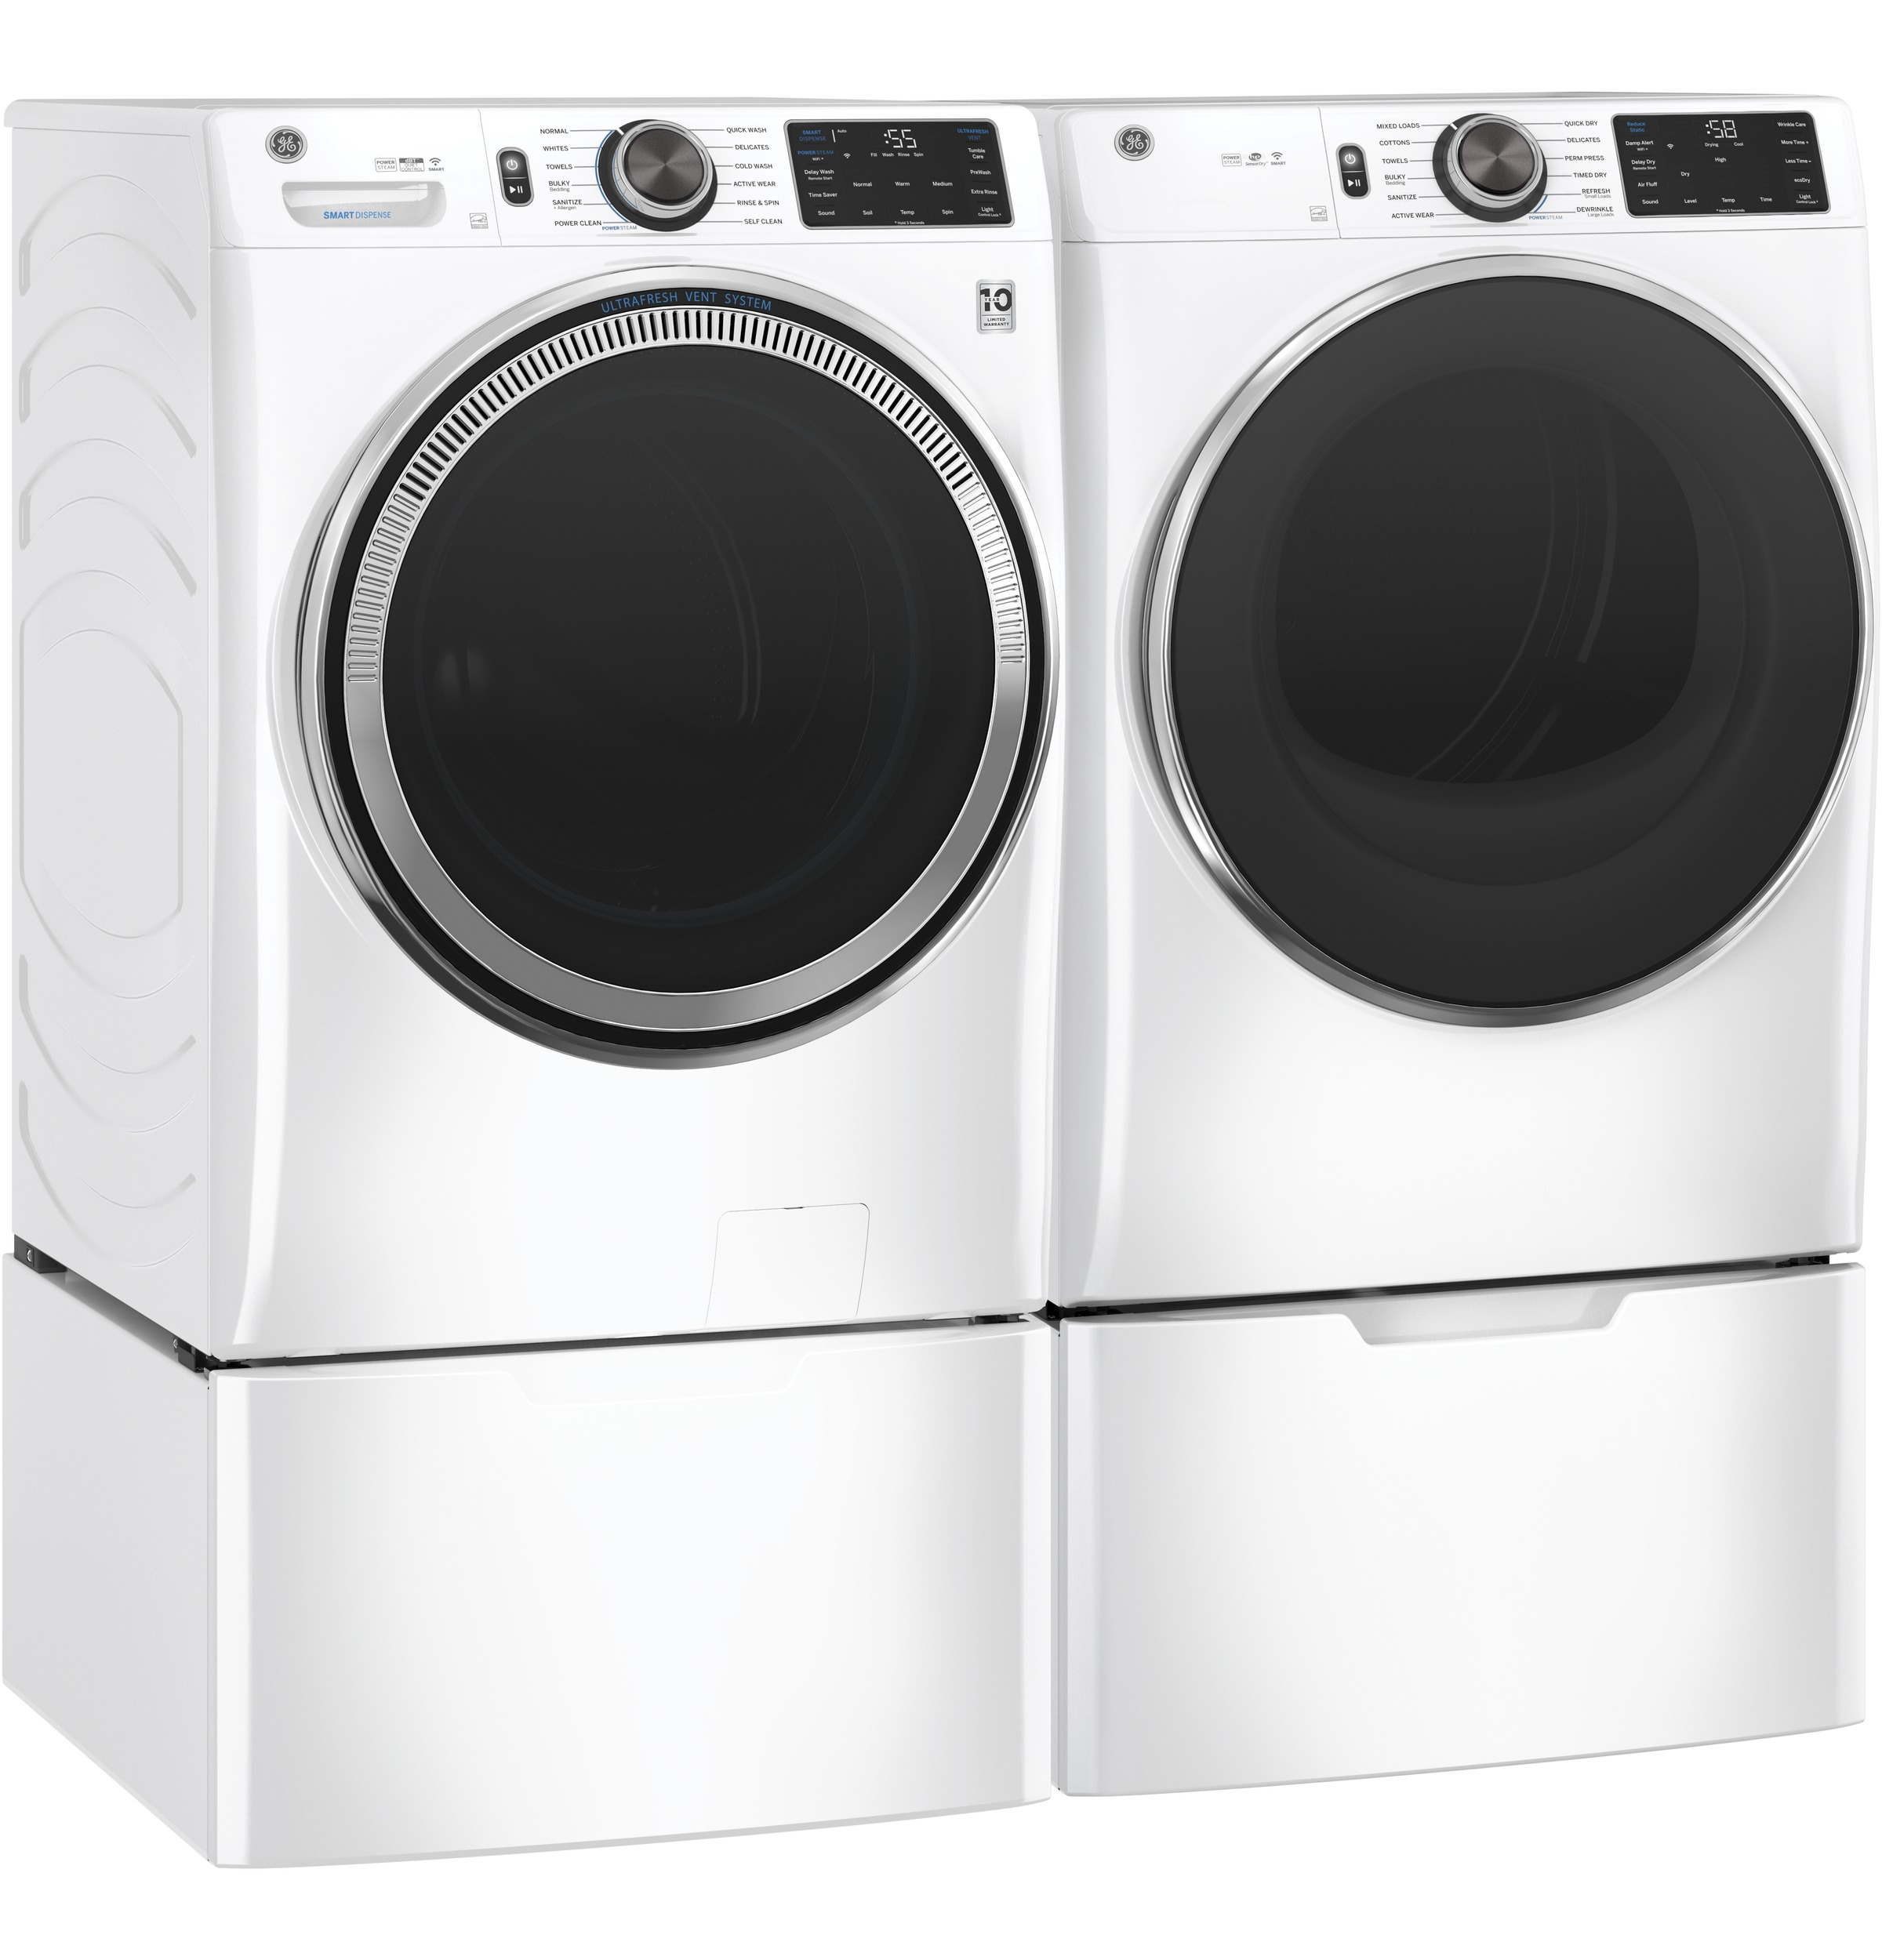 Model: GFW650SSNWW   GE GE® 4.8 cu. ft. Capacity Smart Front Load ENERGY STAR® Steam Washer with SmartDispense™ UltraFresh Vent System with OdorBlock™ and Sanitize + Allergen